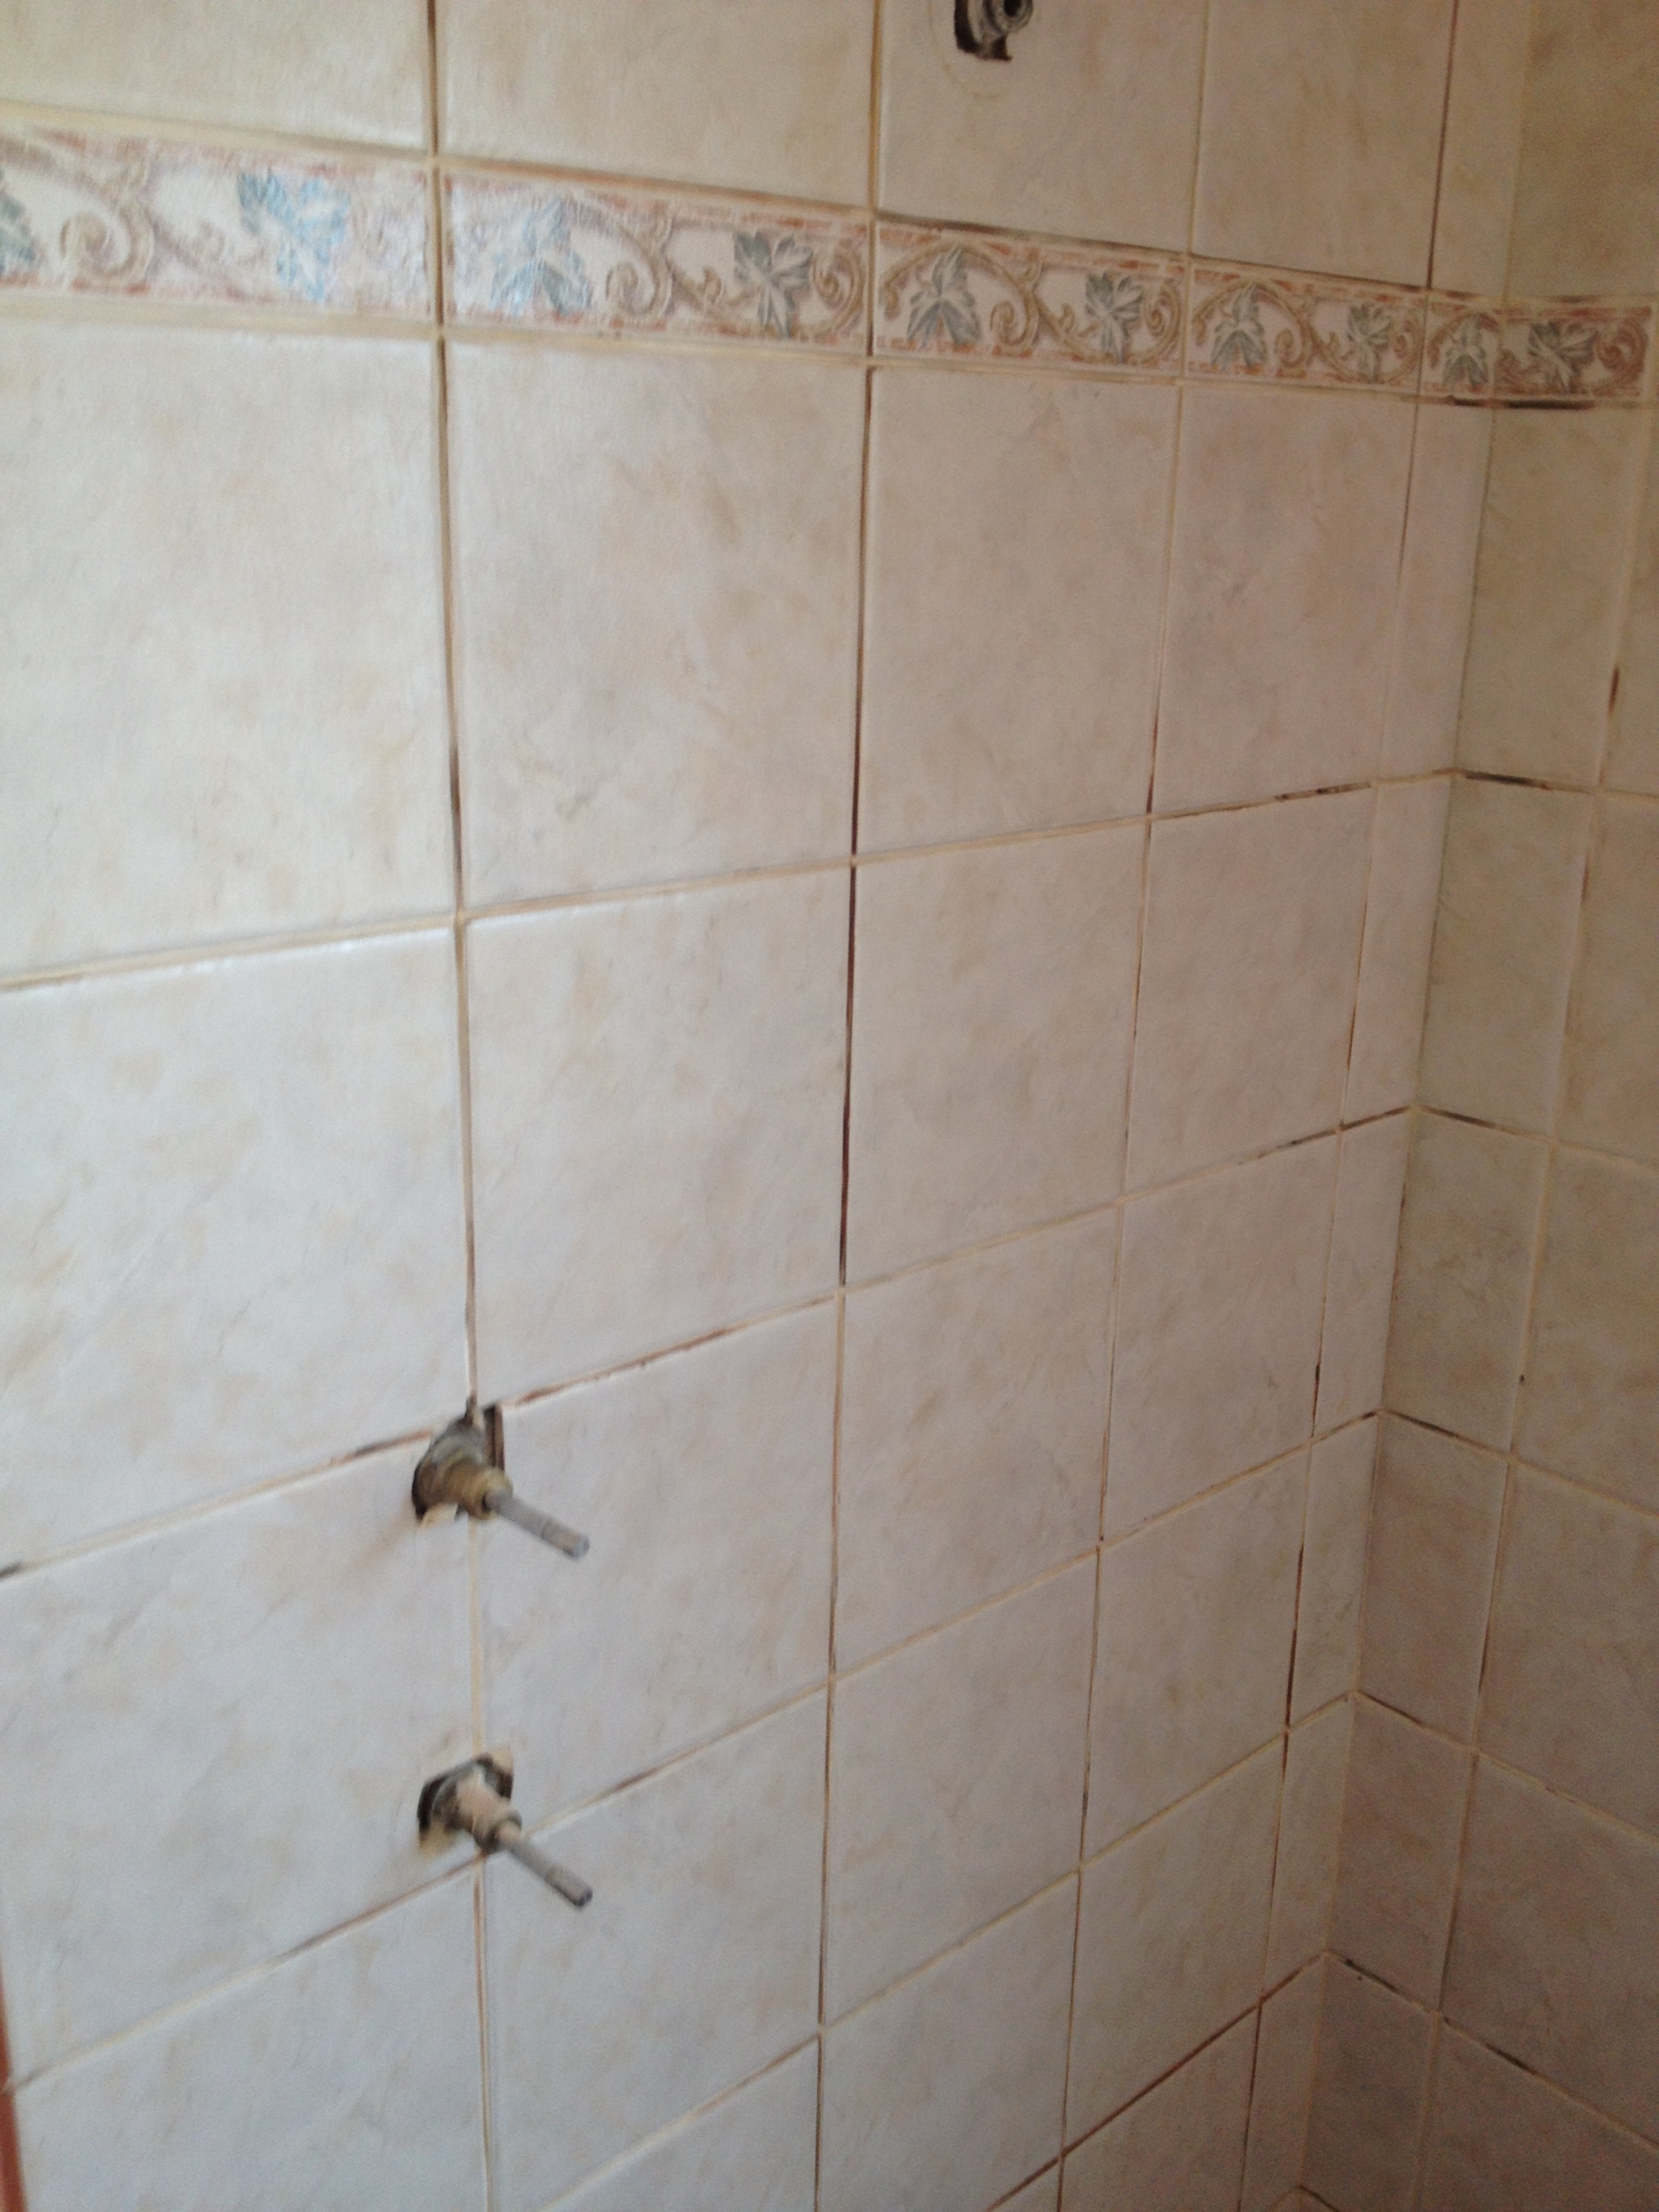 Awesome Leaking Grout, Shower Leaking, Wet Wall, Tile Grout, Epoxy Grout